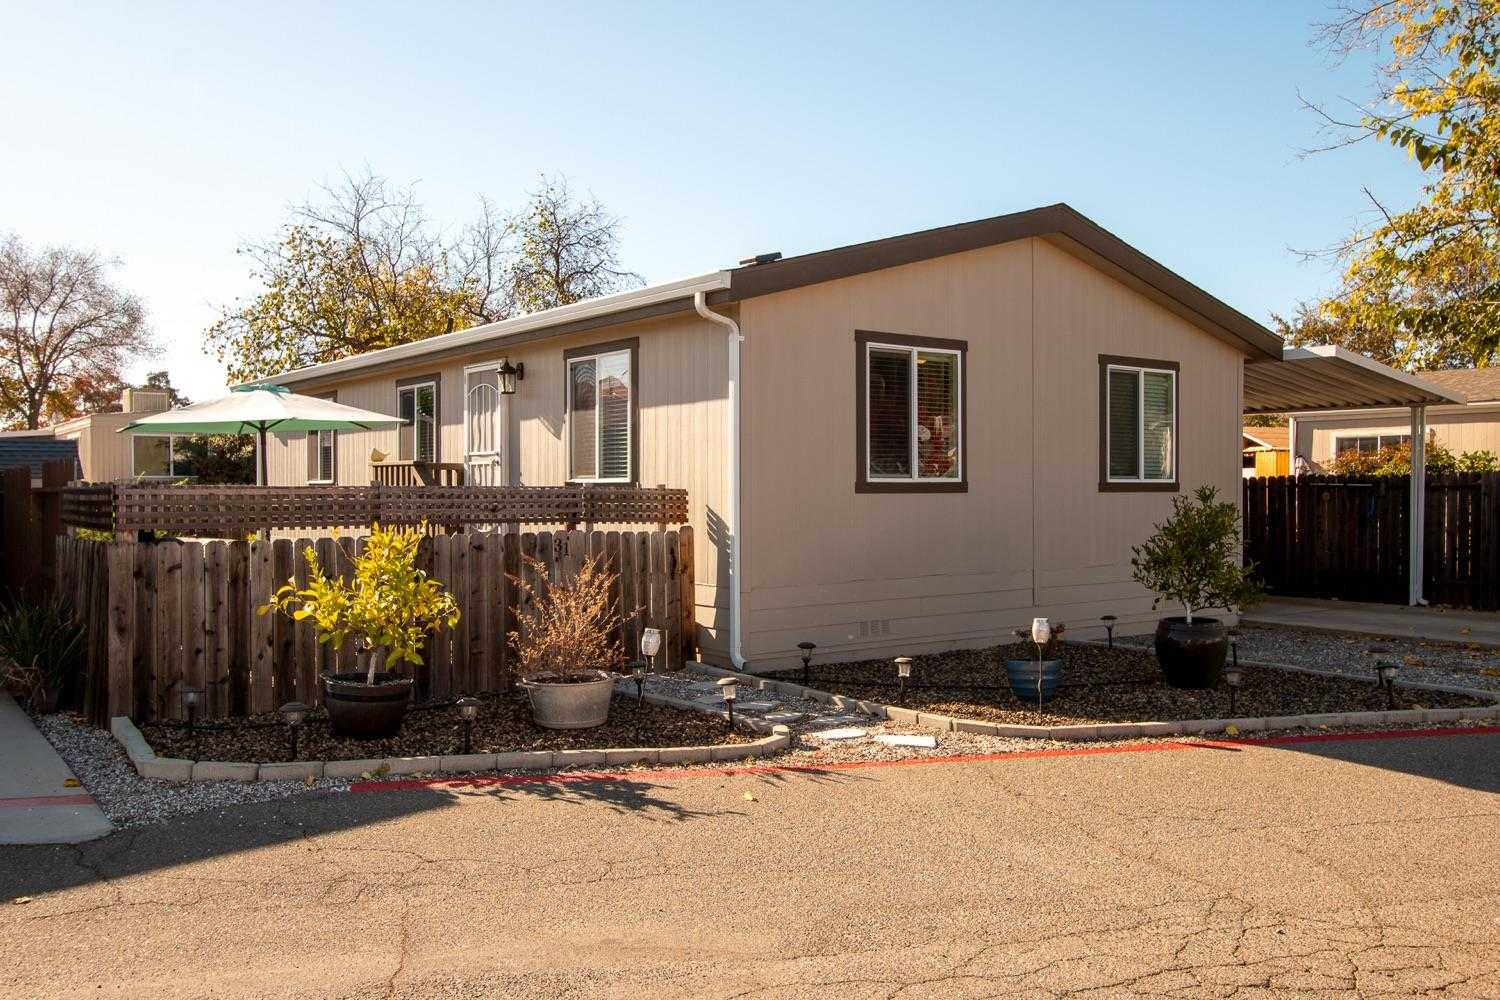 $179,000 - 3Br/2Ba -  for Sale in El Dorado Hills